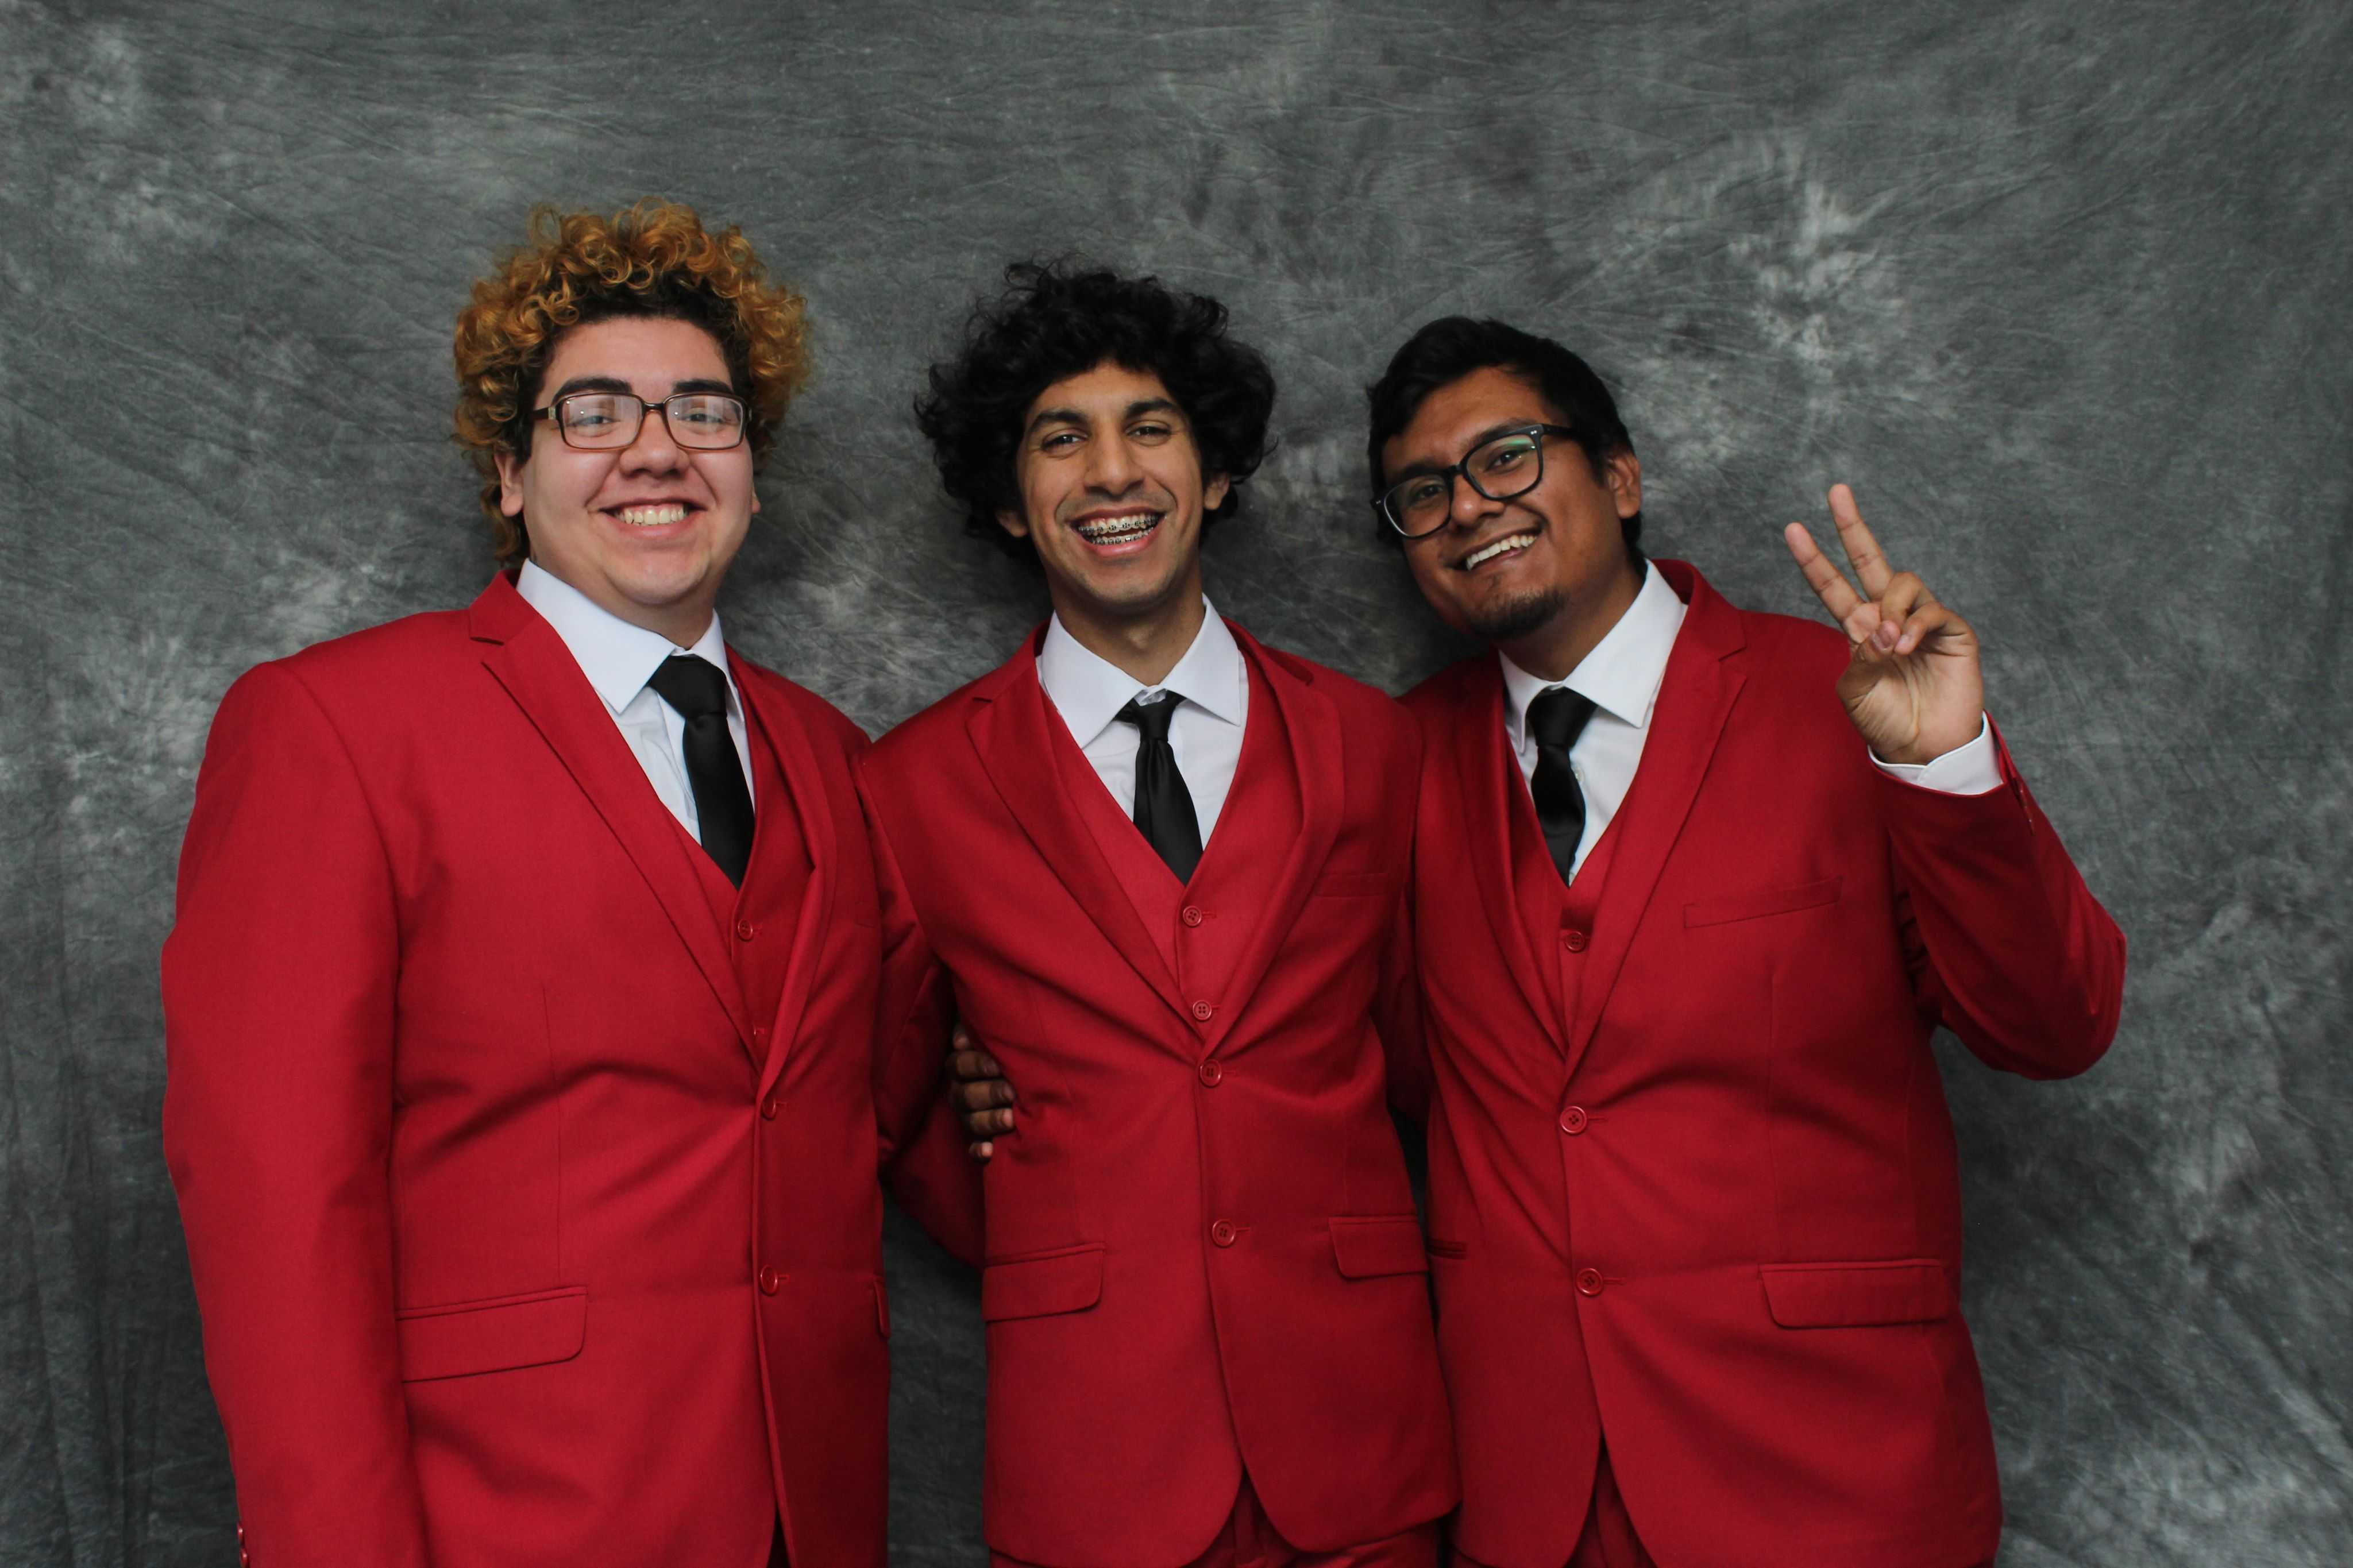 Henry Vargas, Jorge Corona and Patrick Juarez, compose the trio known as The Red Pears. Photo Credit: Courtesy of The Red Pears